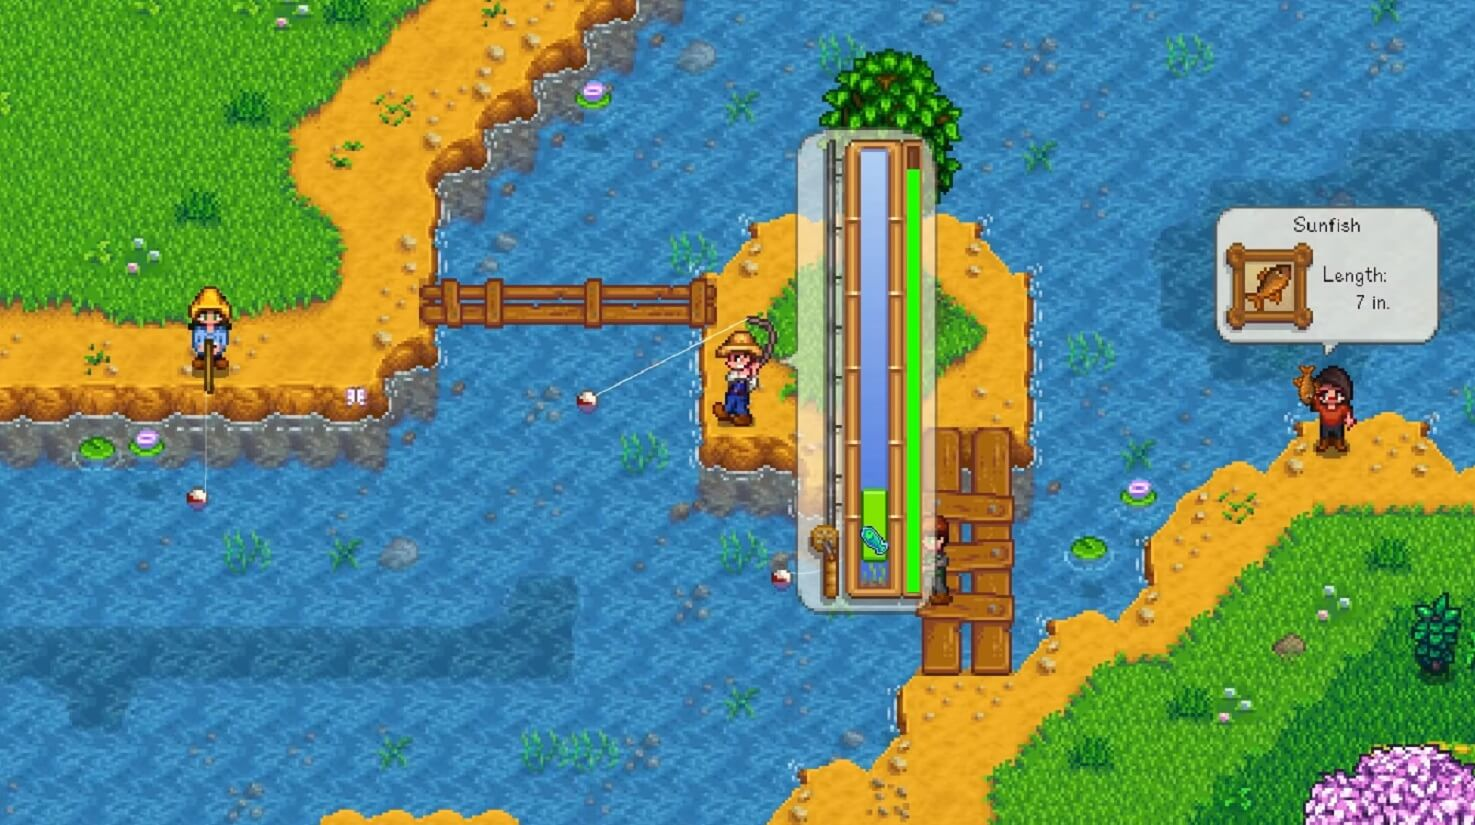 Stardew Valley's multiplayer is leaving beta and scheduled for a